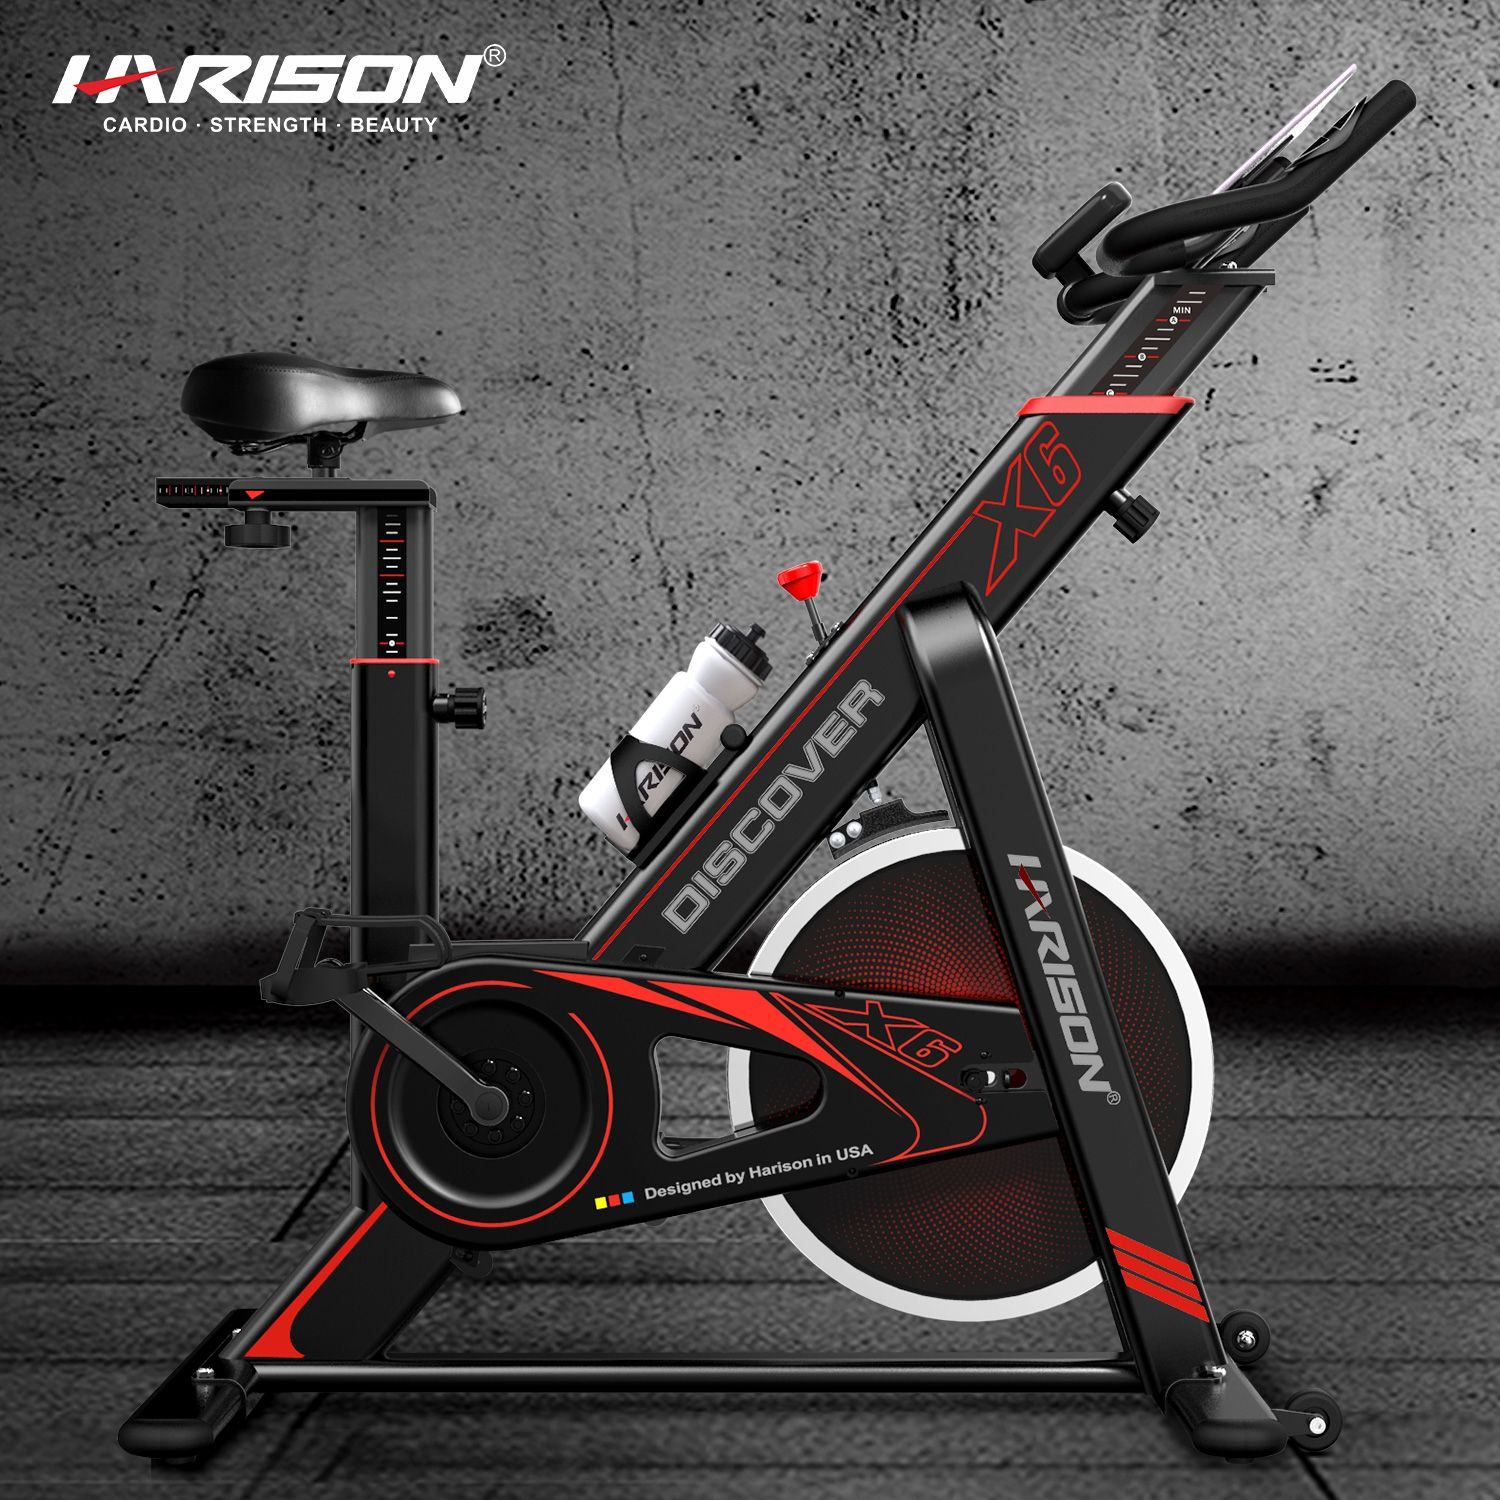 Harison X6 Indoor Cycling Bike With Images Indoor Cycling Bike